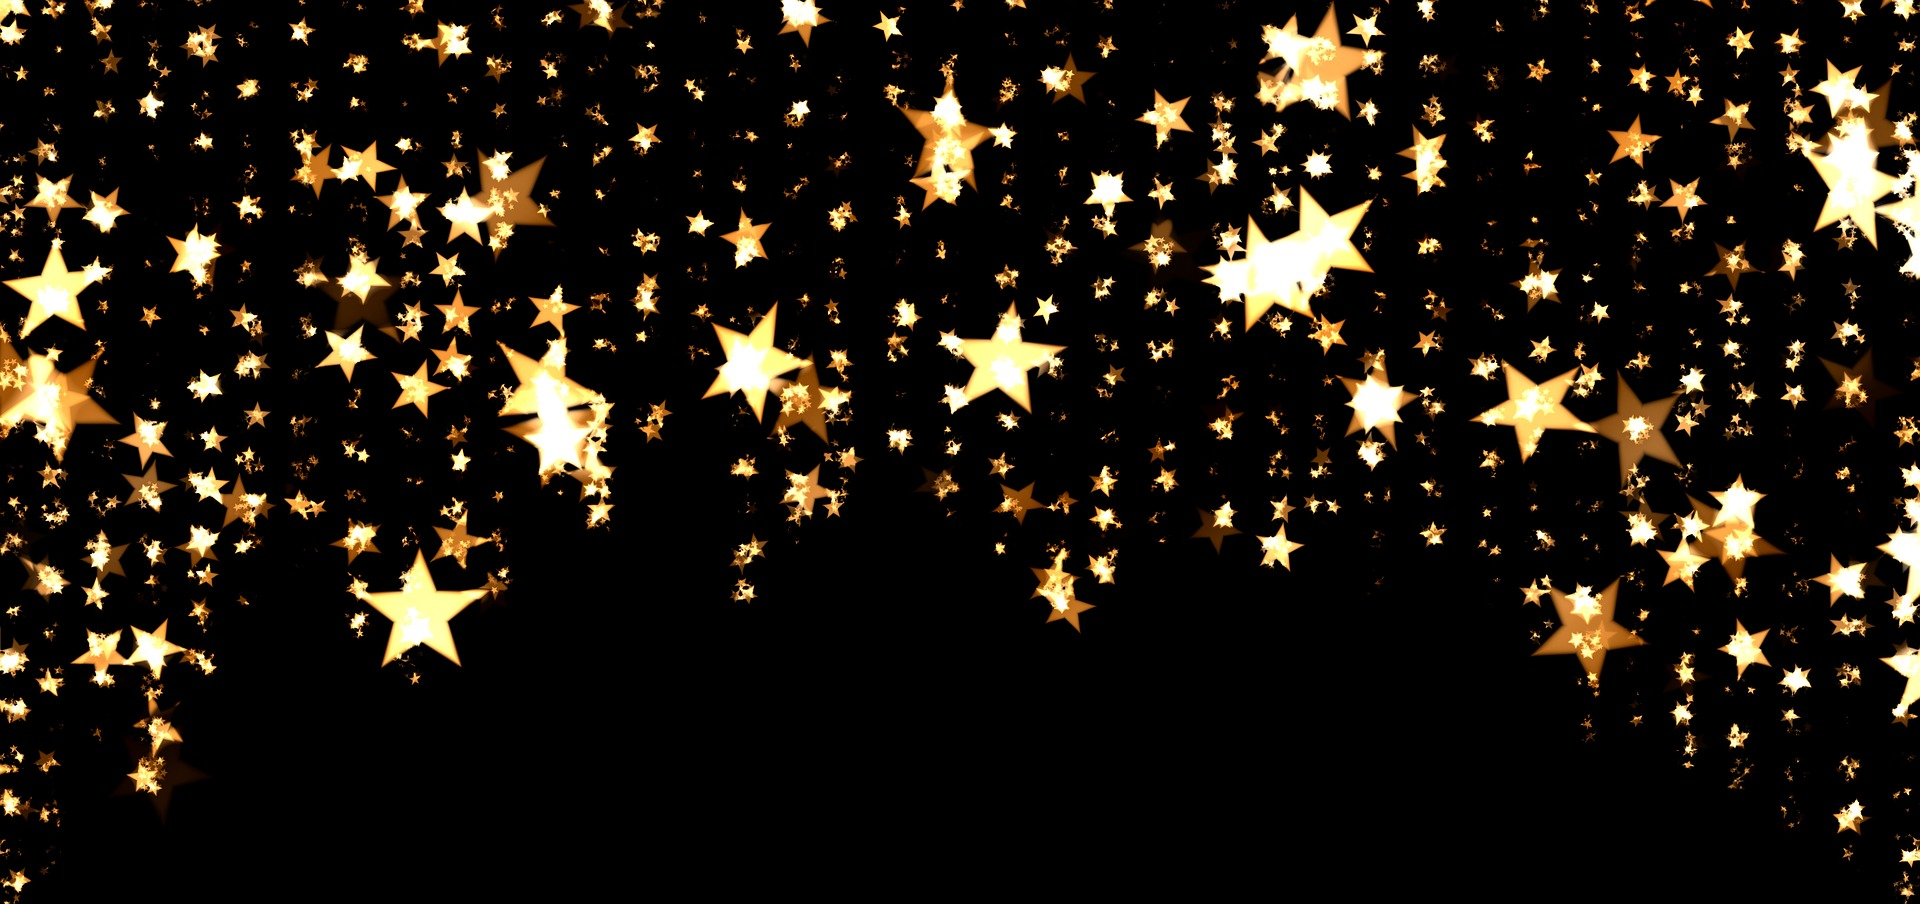 A photo of gold stars against black by geralt on Pixabay